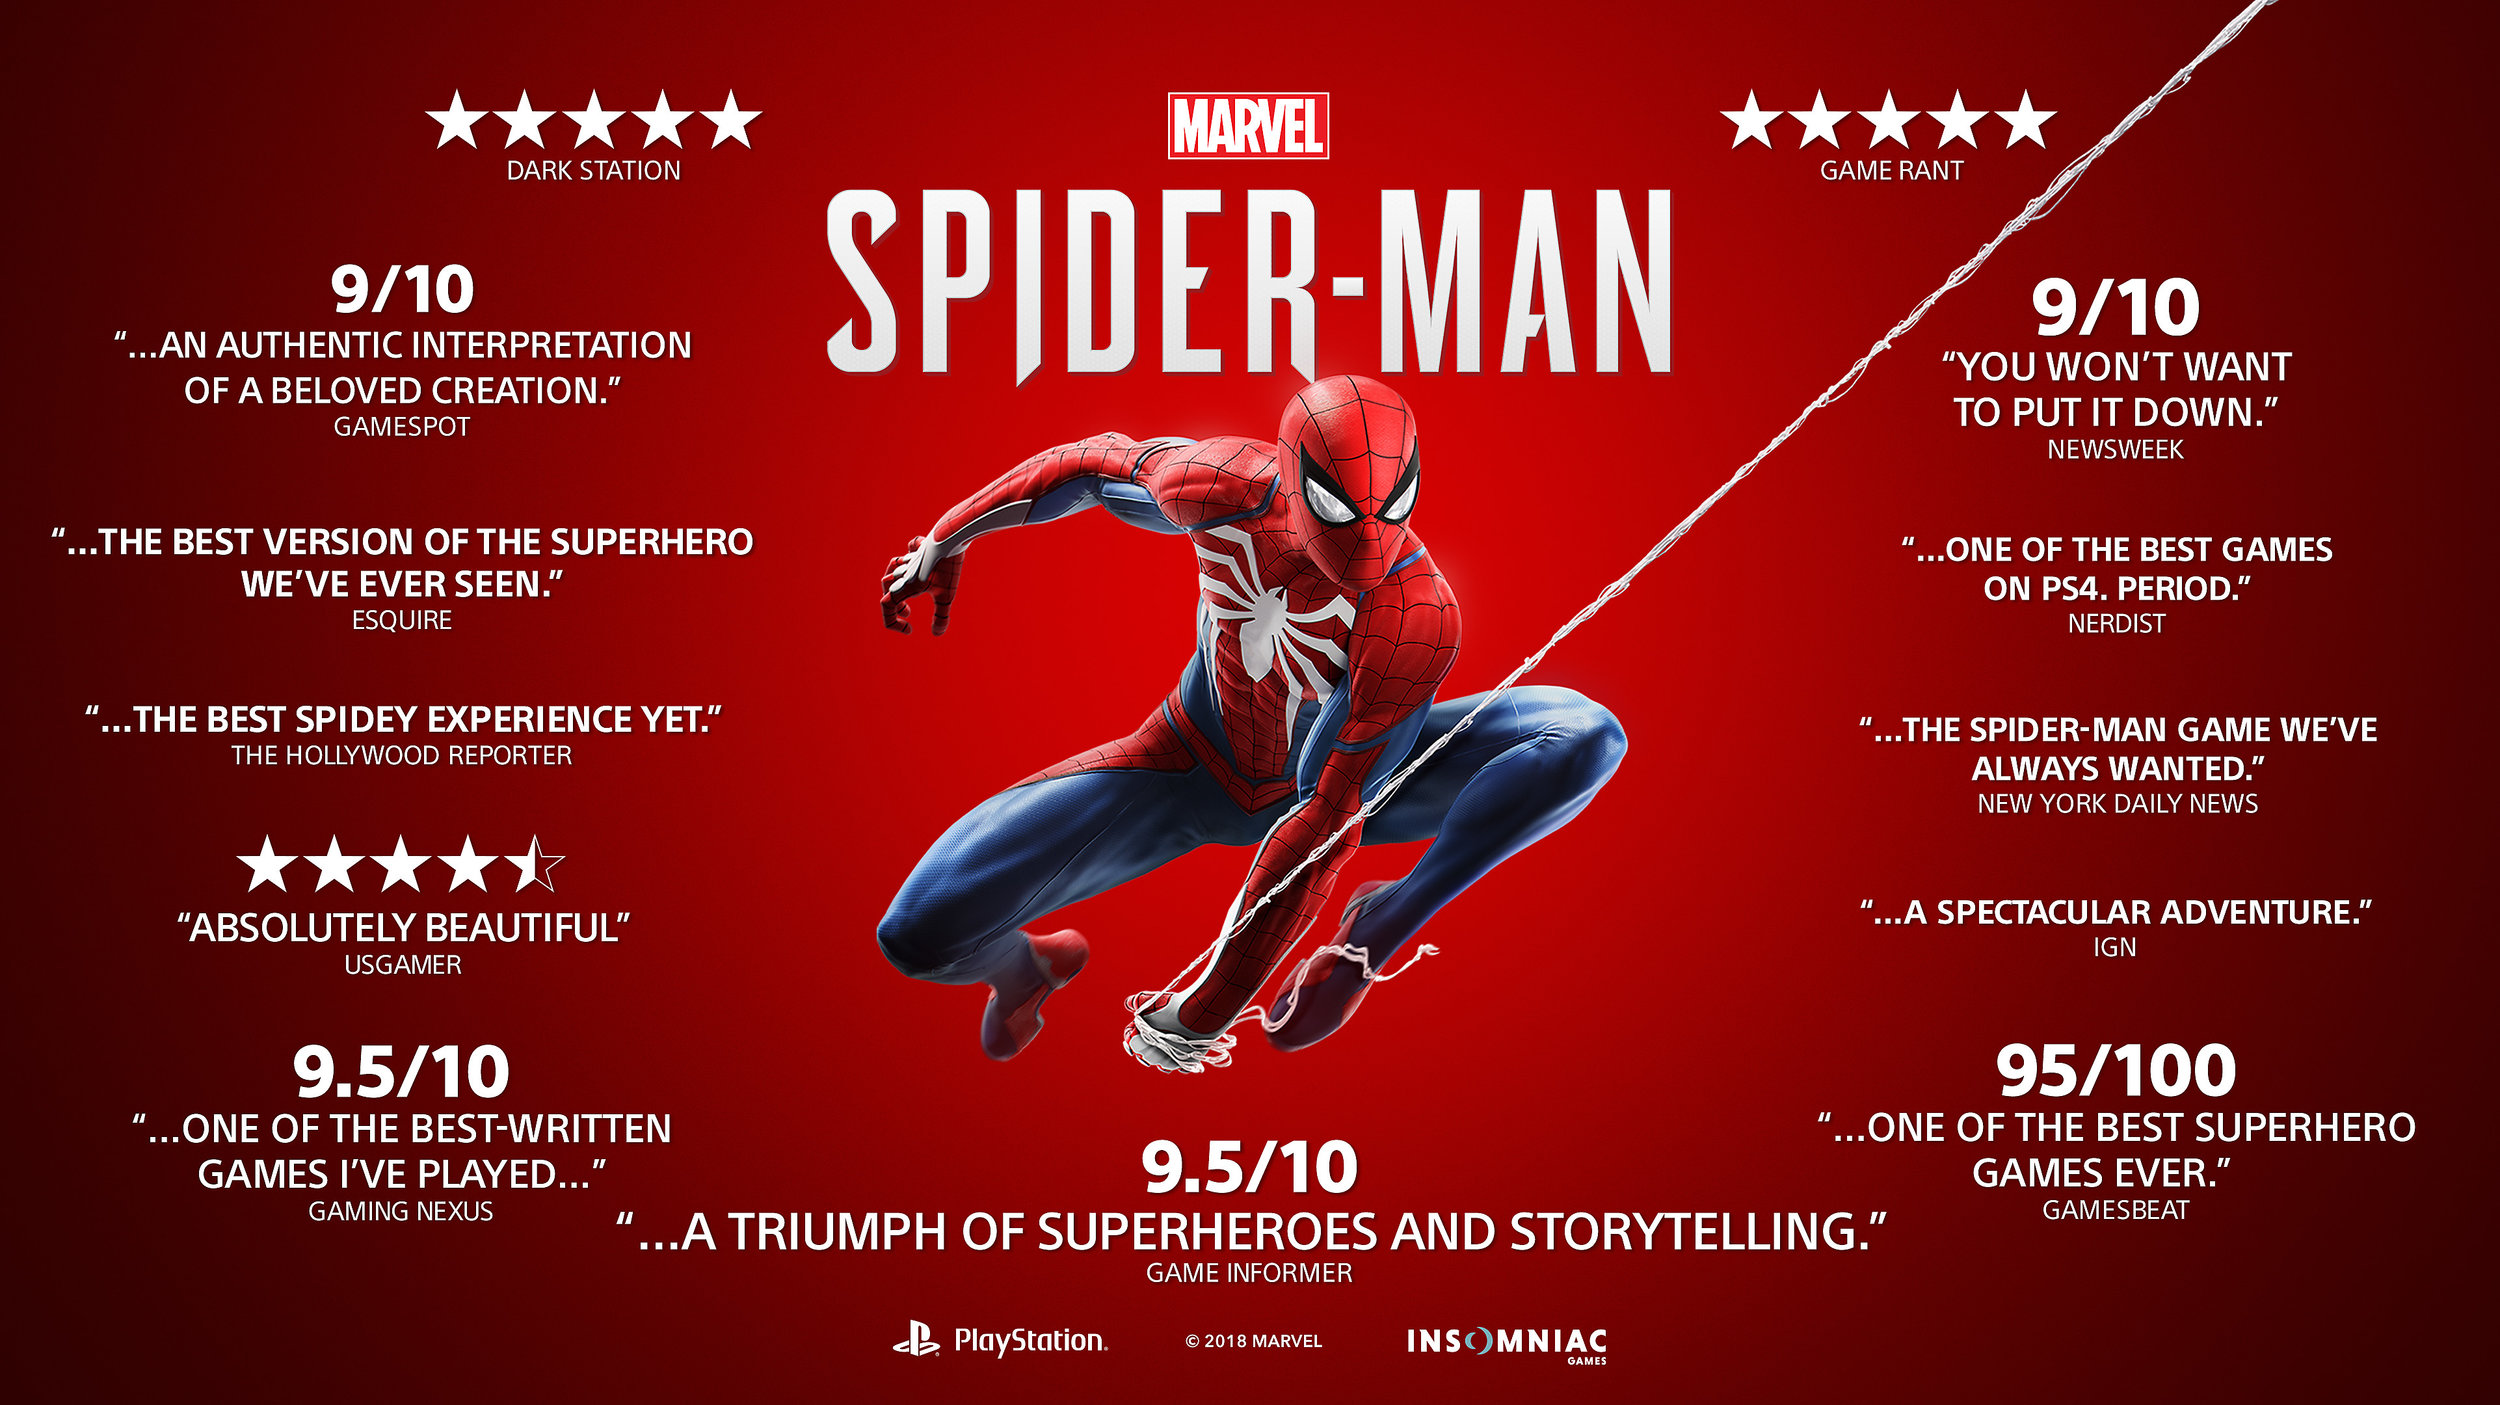 marvels-spider-man-accolades-image-block-01-ps4-us-14sep18.jpg